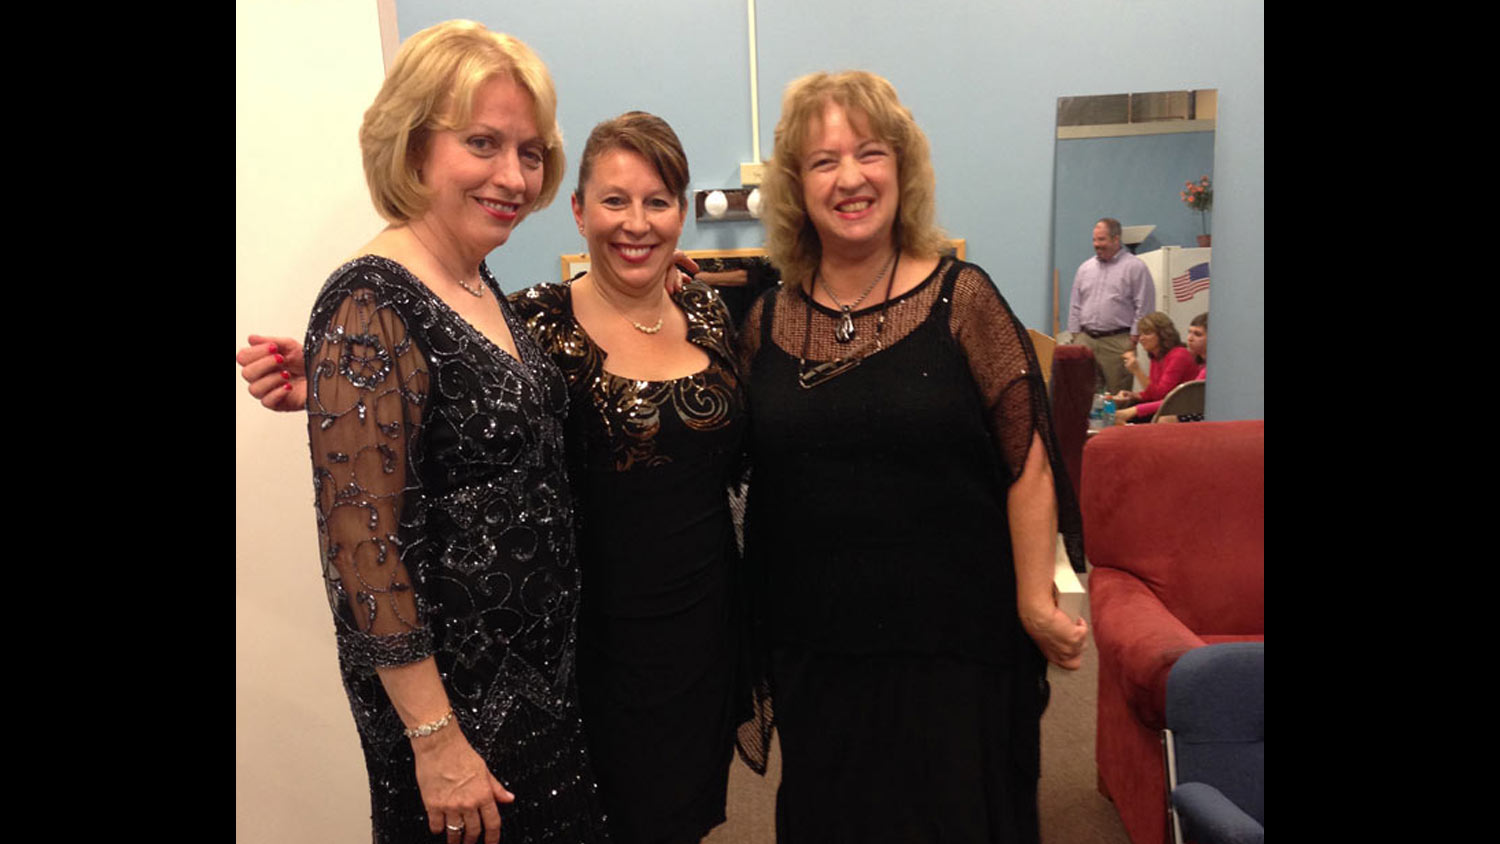 Backstage with singer Nancy Donnelly and pianist Peg Delaney before headlining a benefit concert for the Double H Ranch, Glens Falls, NY